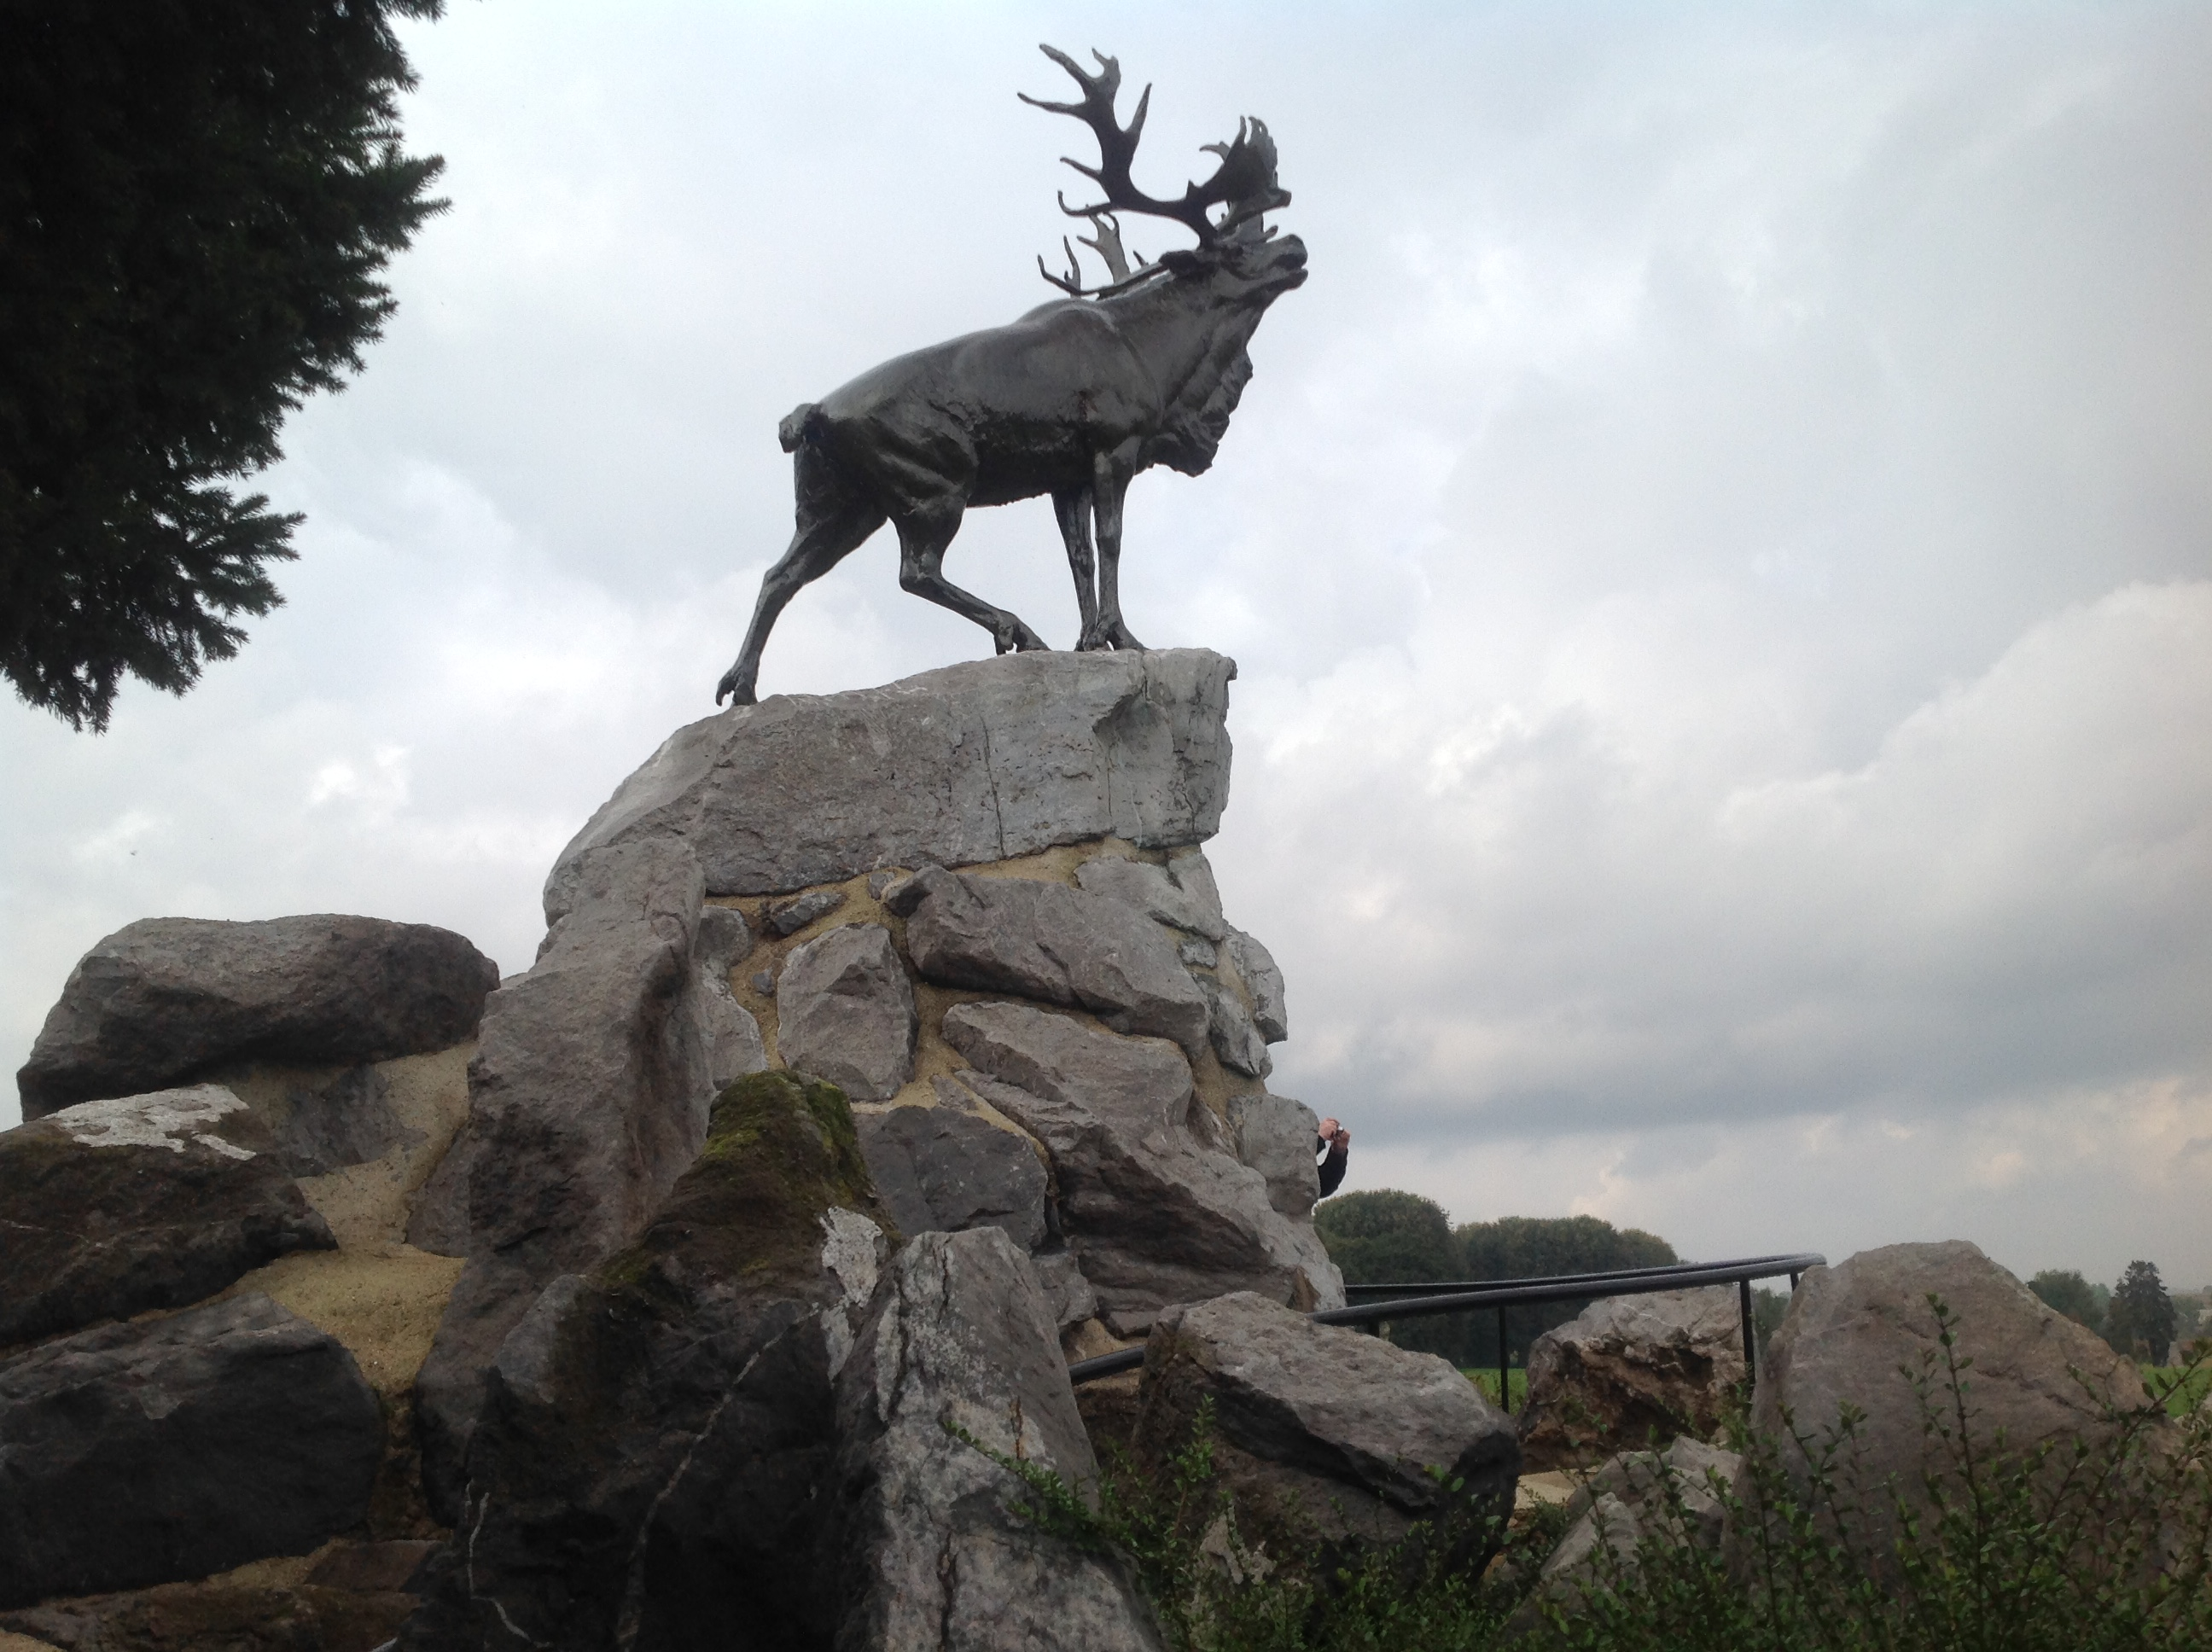 The caribou monument honours Newfoundland's lost men.